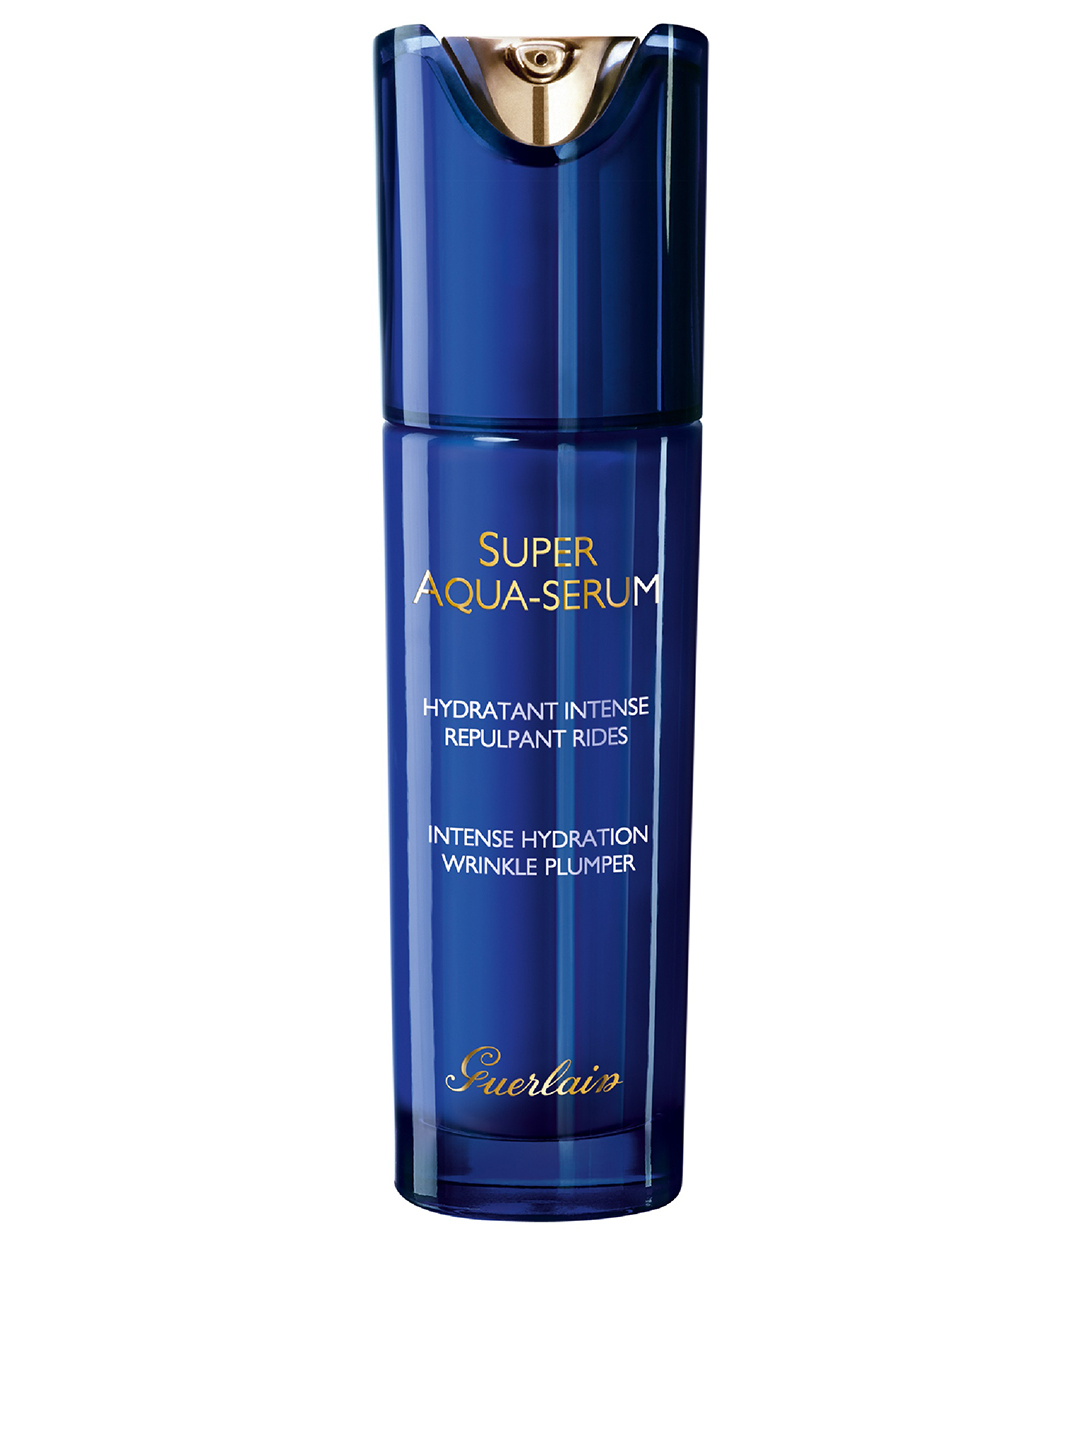 GUERLAIN Super Aqua-Serum Intense Hydration Wrinkle Plumper Beauty